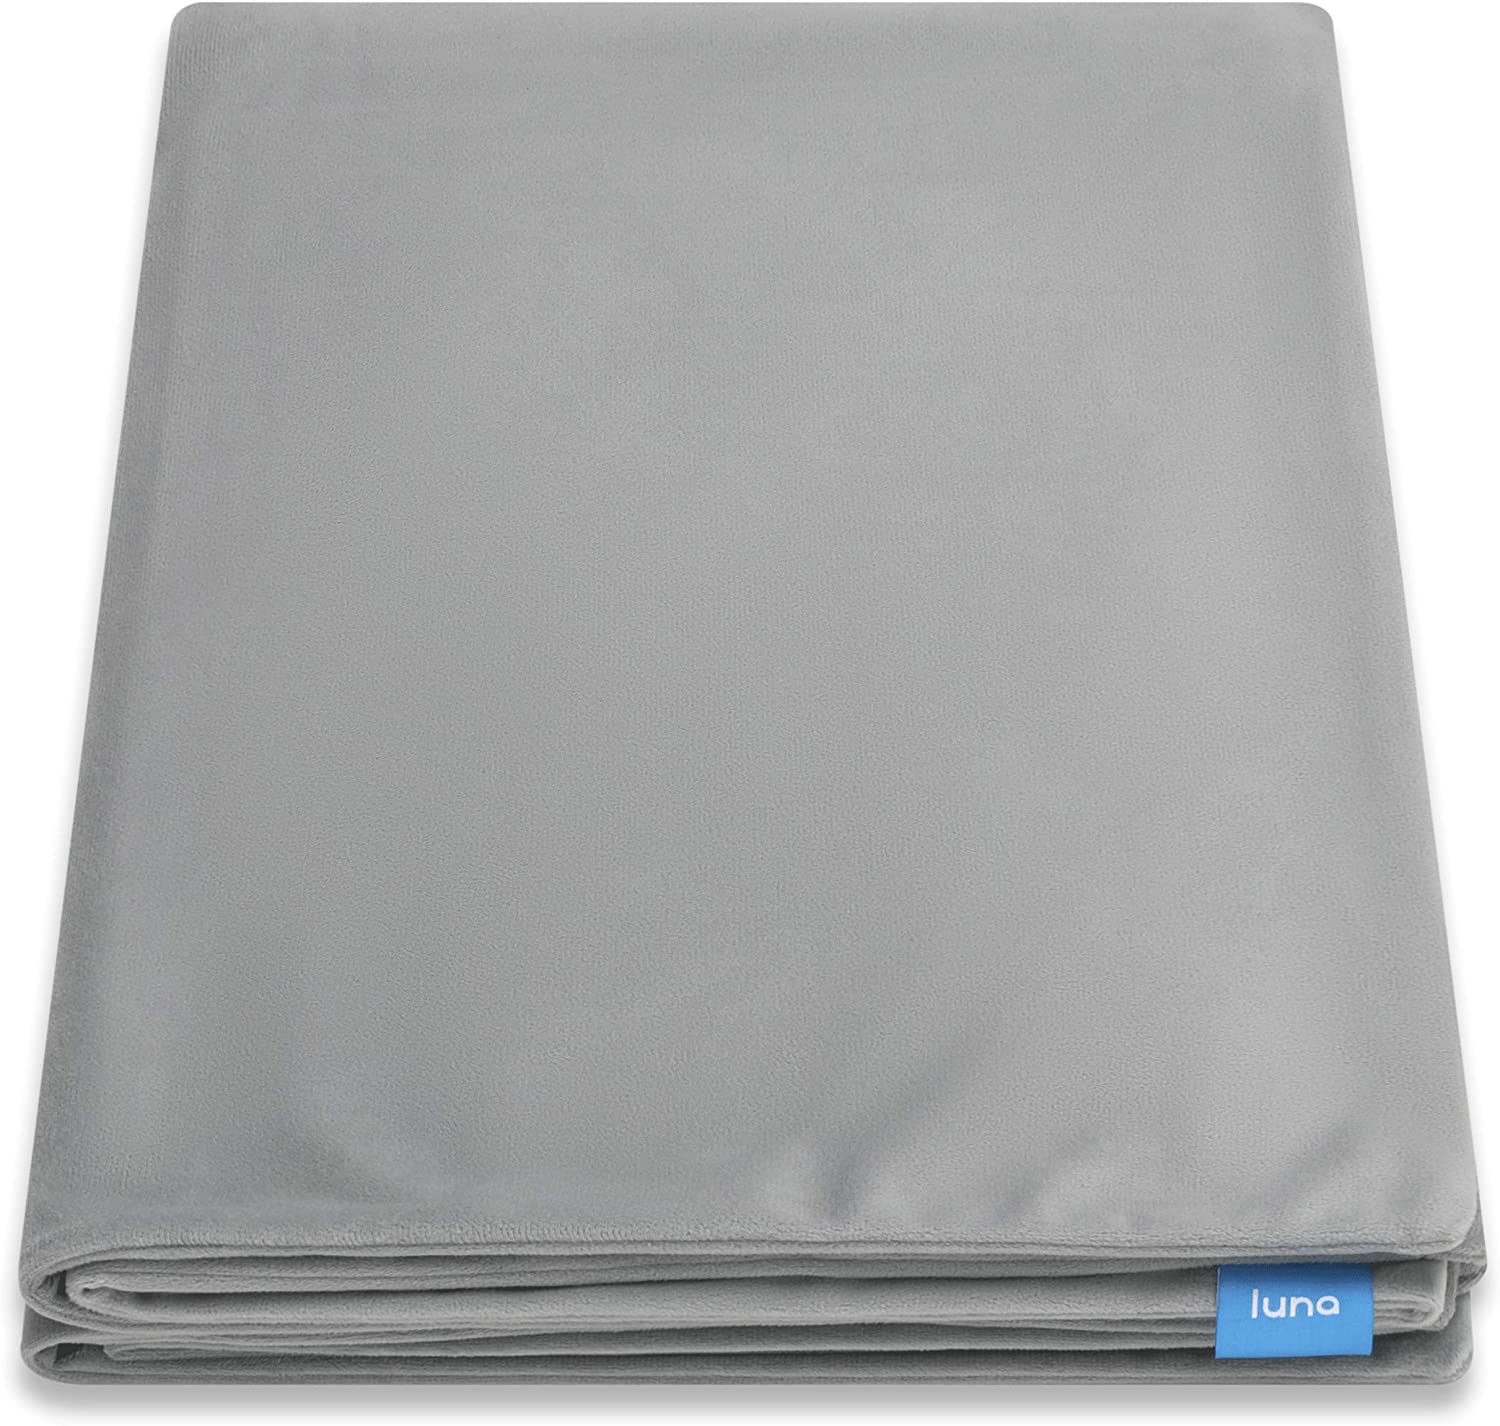 LUNA Removable Duvet Cover for Weighted Blanket | 60x80 - Queen Size | 100% Oeko-Tex Certified Polyester Minky Fleece | Machine Washable & 8 Ties for Secure Fastening | Designed in USA | Grey